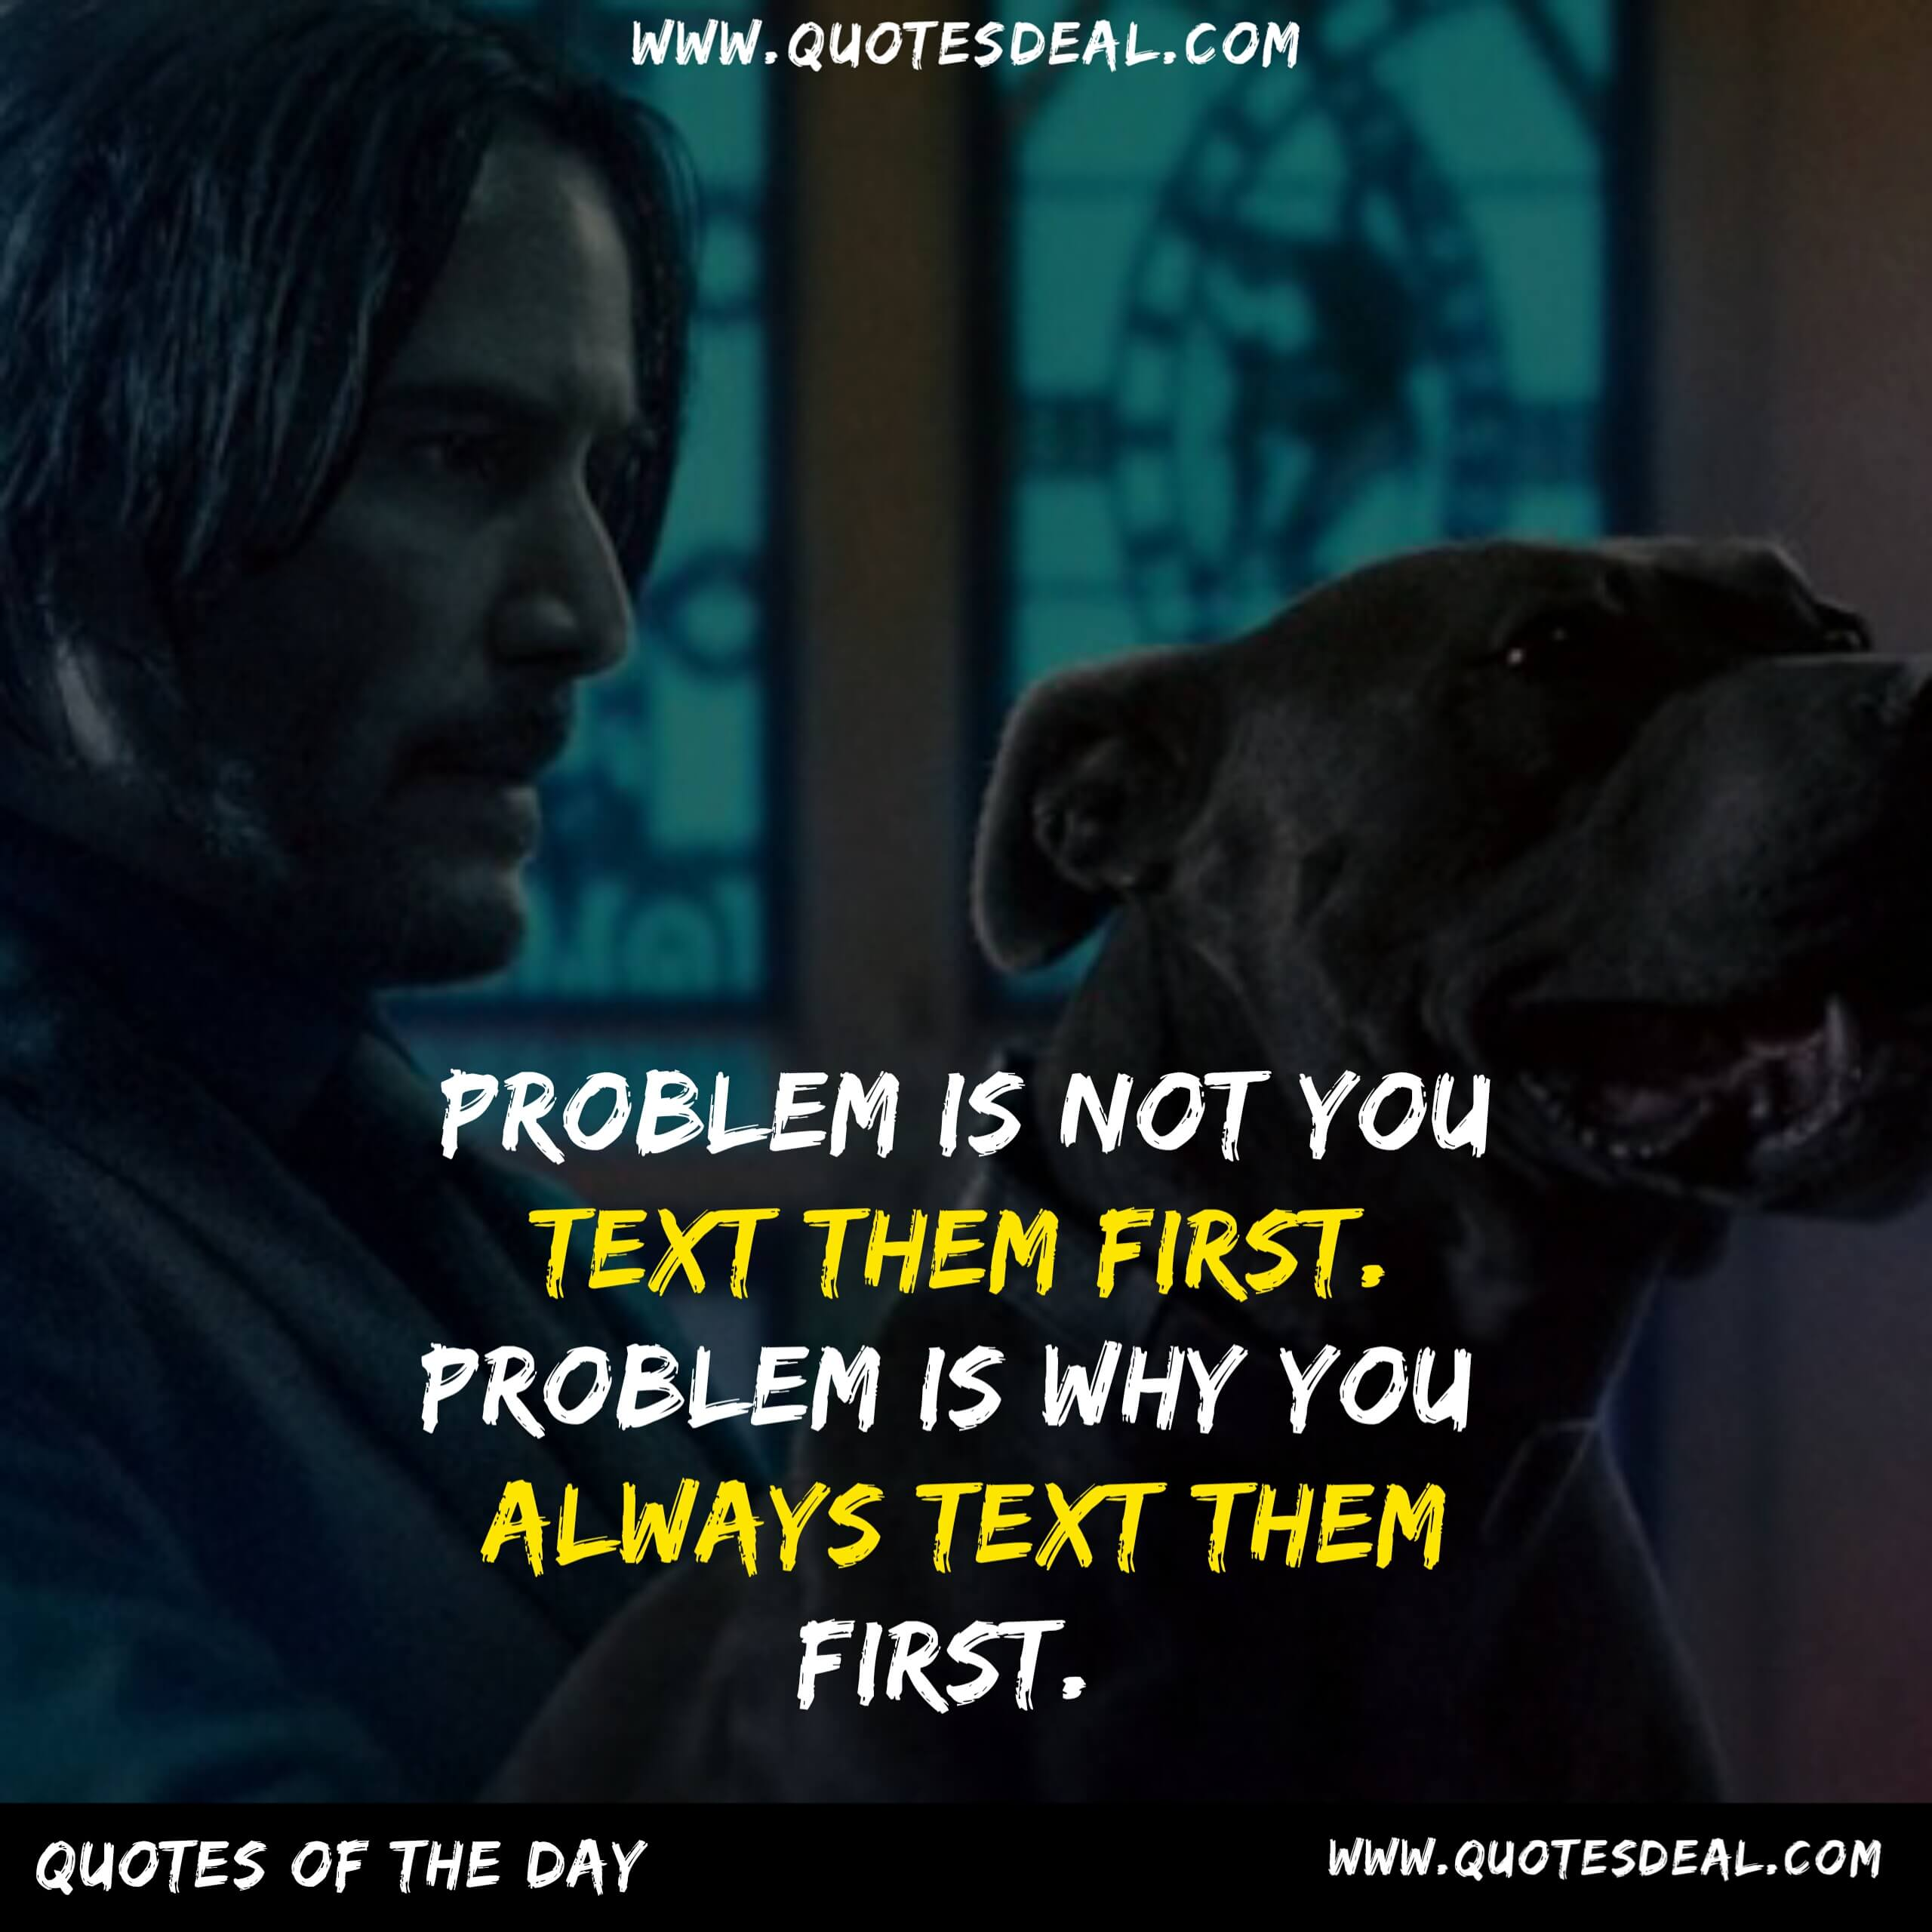 Problem is not you